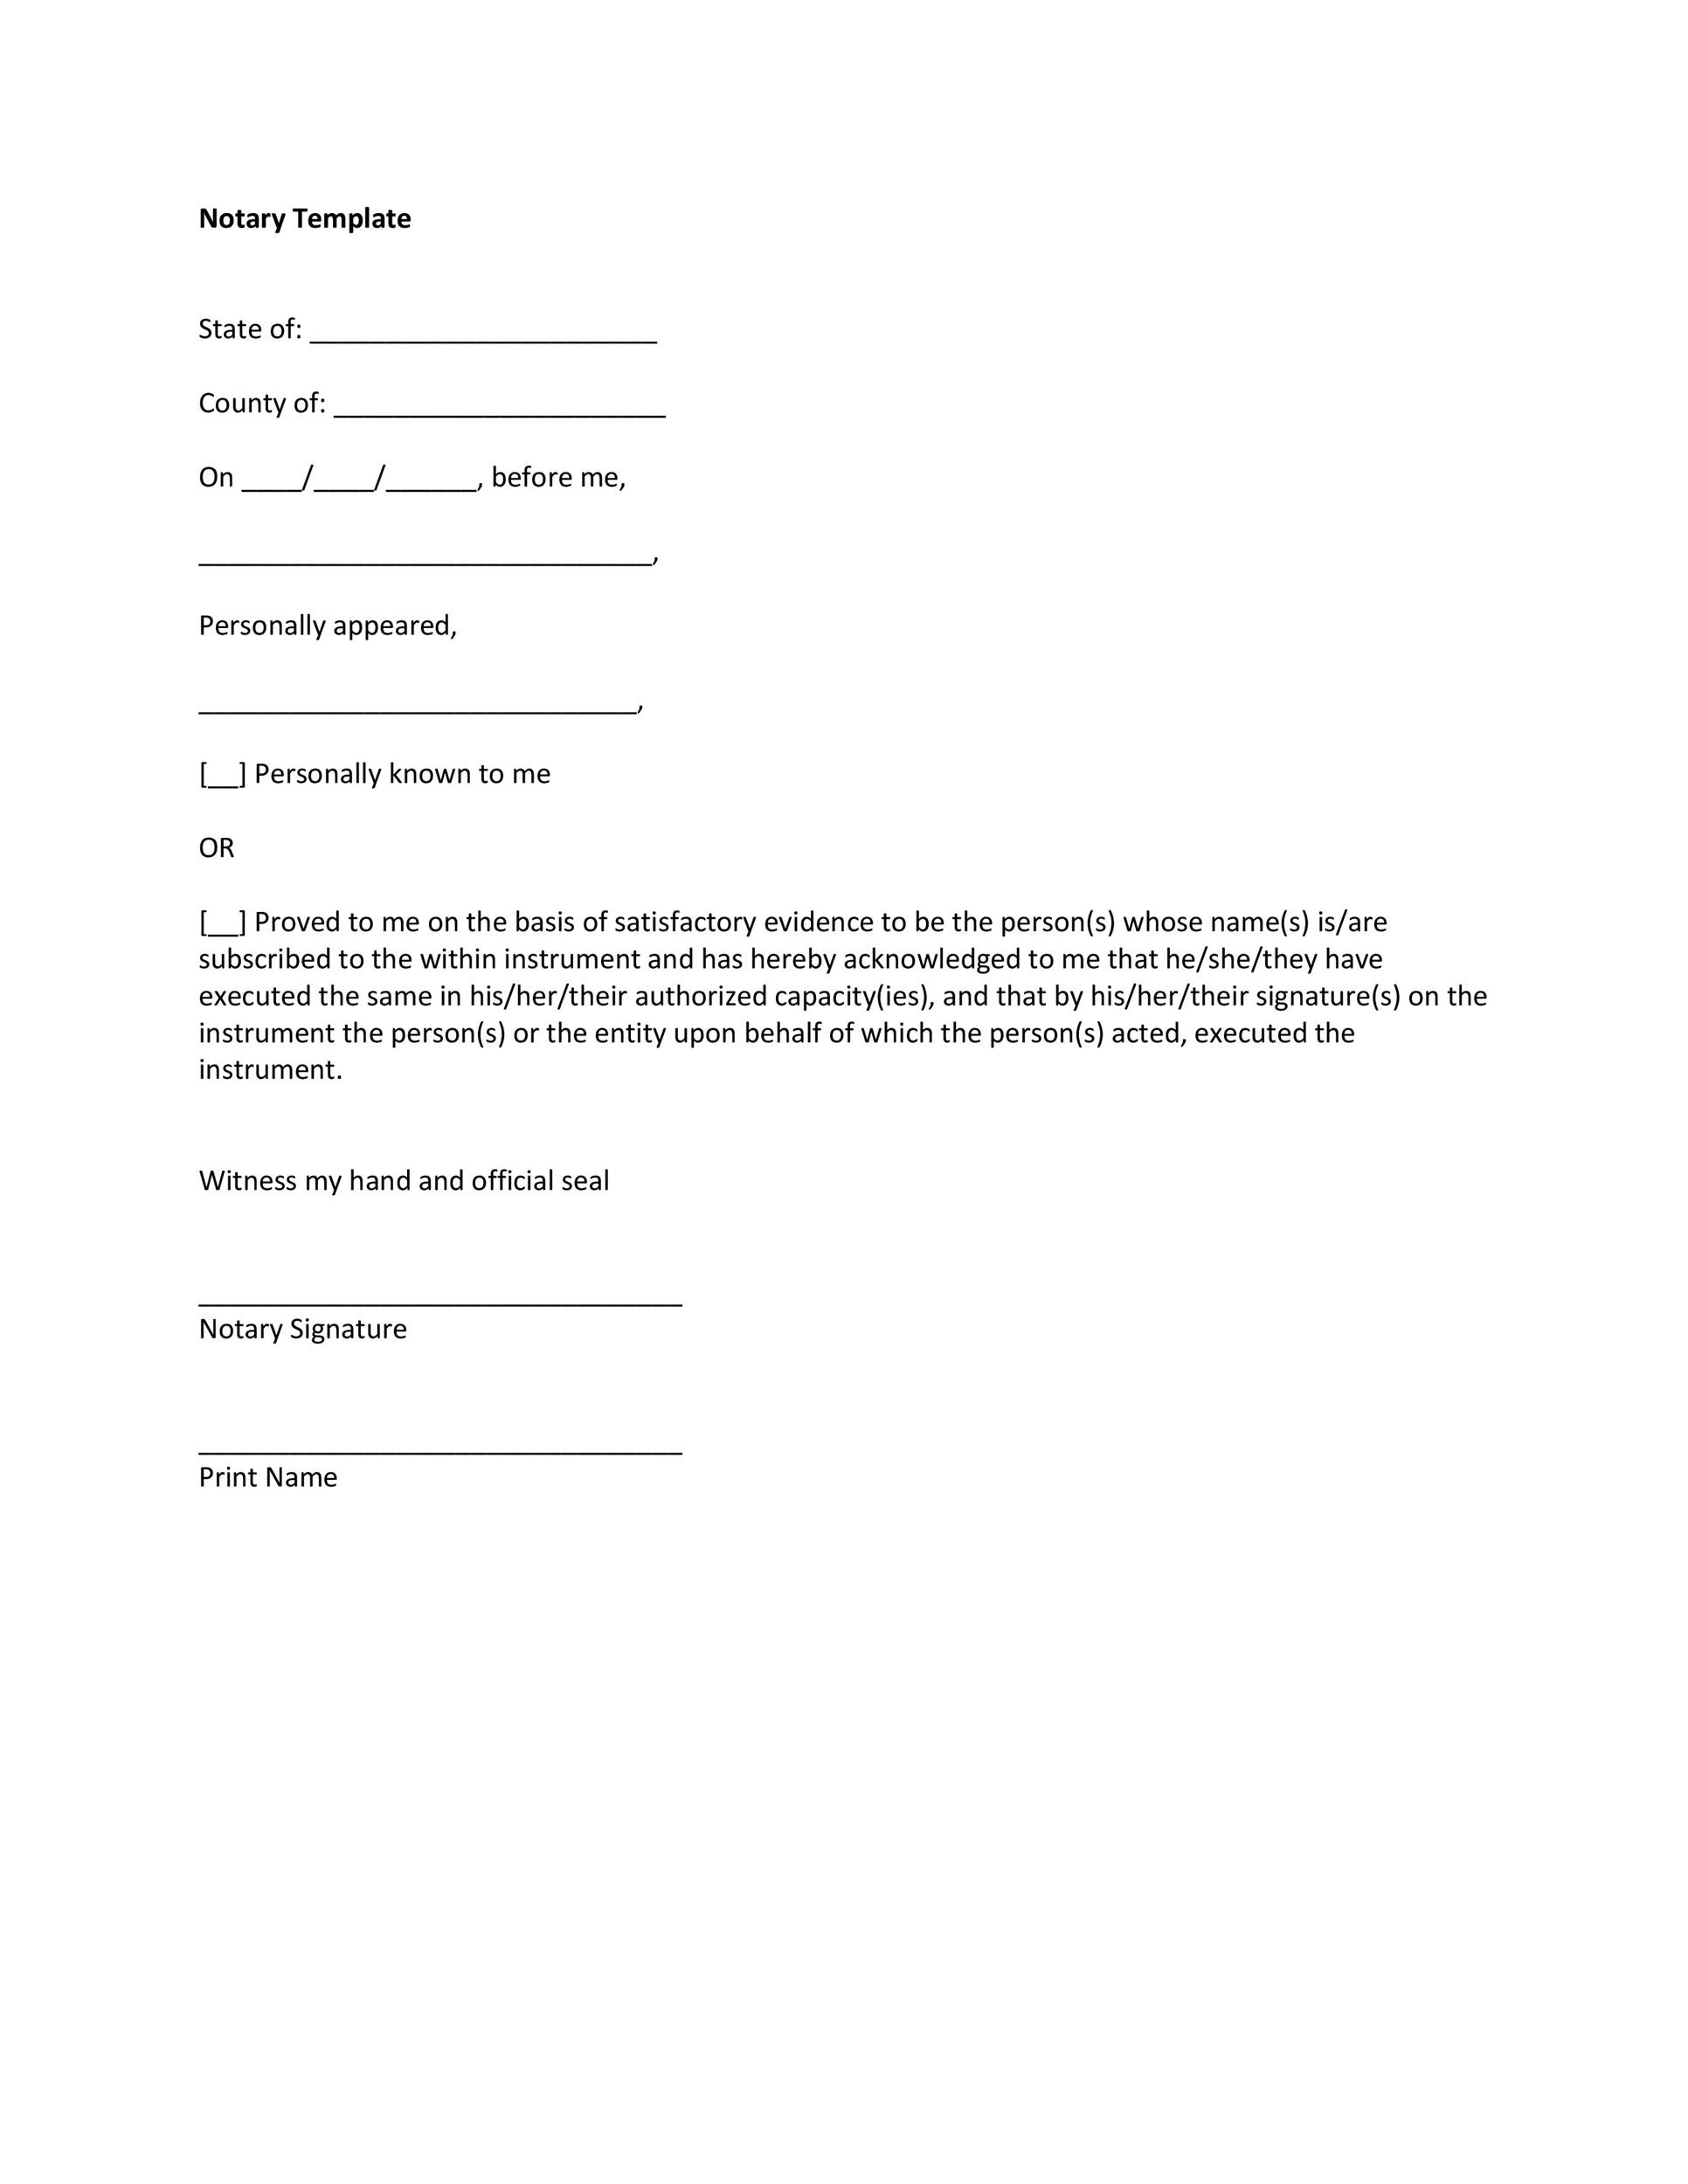 Free notary acknowledgement 04